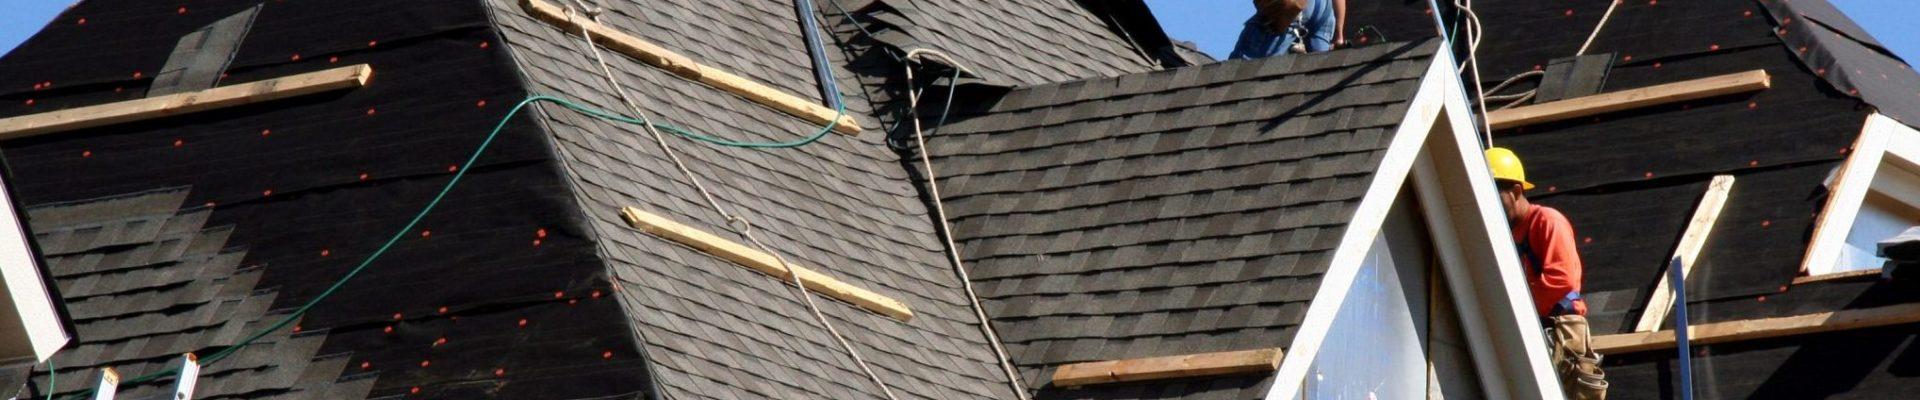 Benefits of Hiring a Residential Roofing Contractor